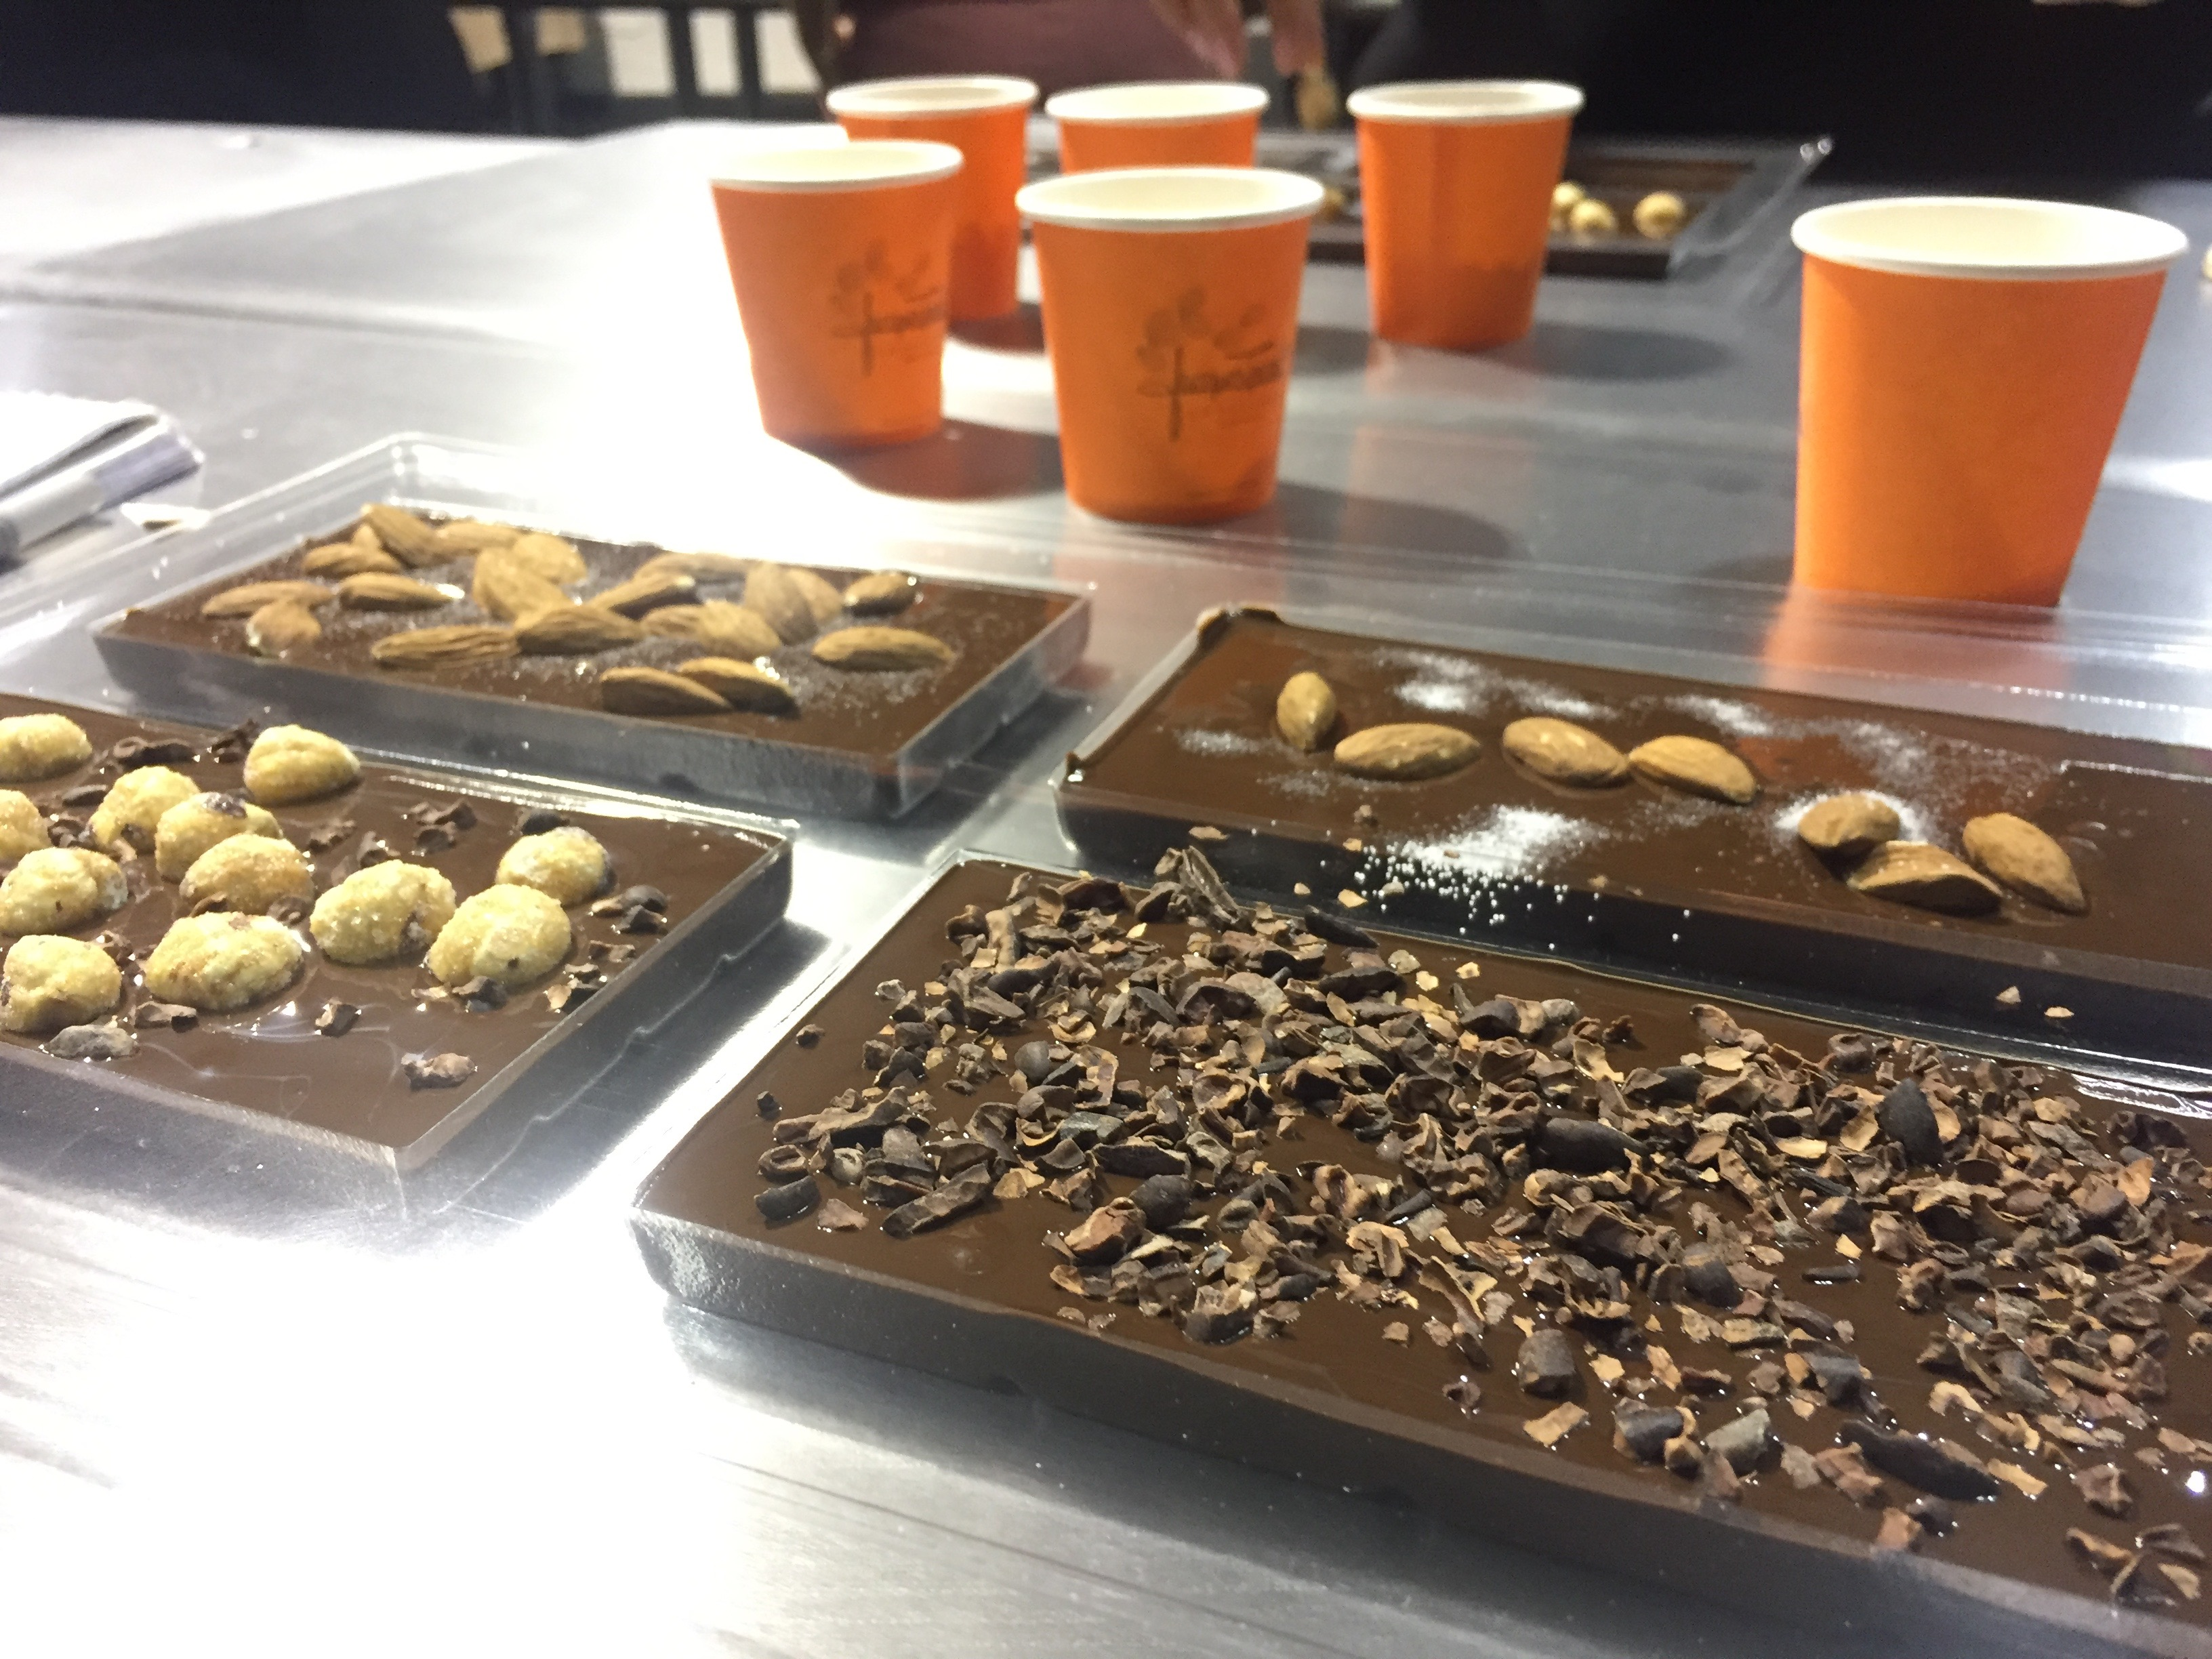 Chocolate bark made at the museum's workspace can be topped with different ingredients before it cools—and taken home after about 15 minutes.